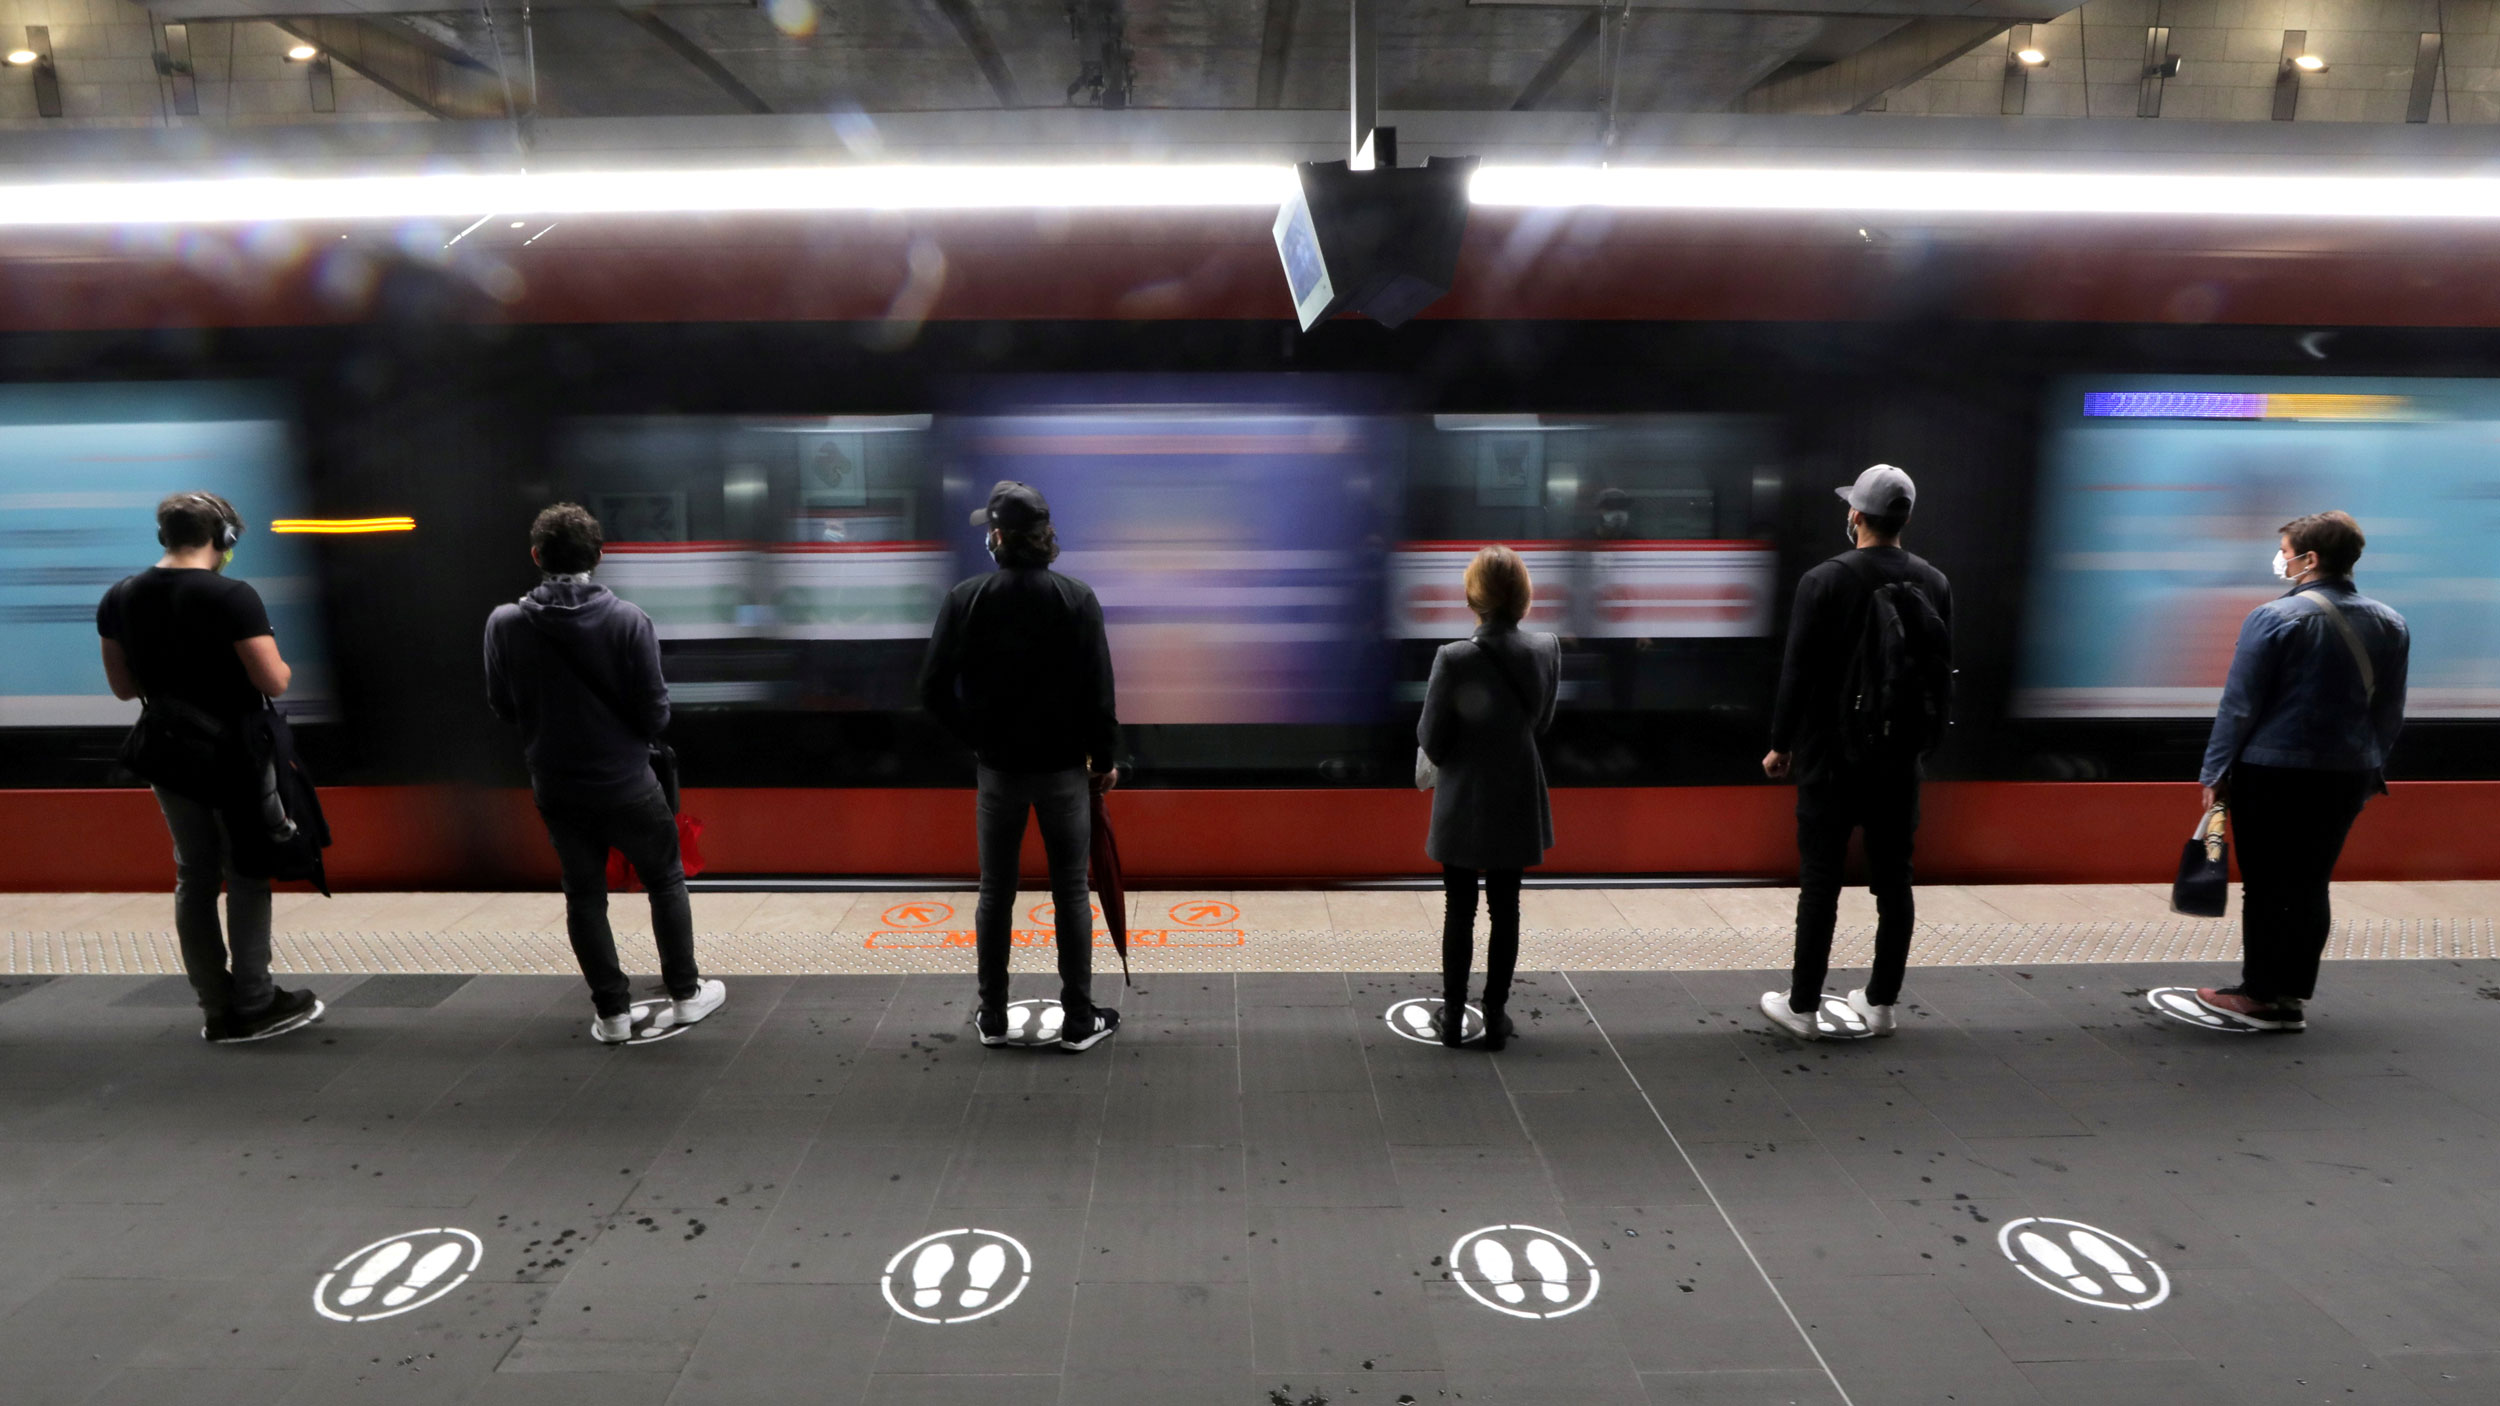 People Stand On Signs To Respect Social Distancing On A Platform For The Tramway In Nice As France Begun A Gradual End To A Nationwide Lockdown Due To The Coronavirus May 11